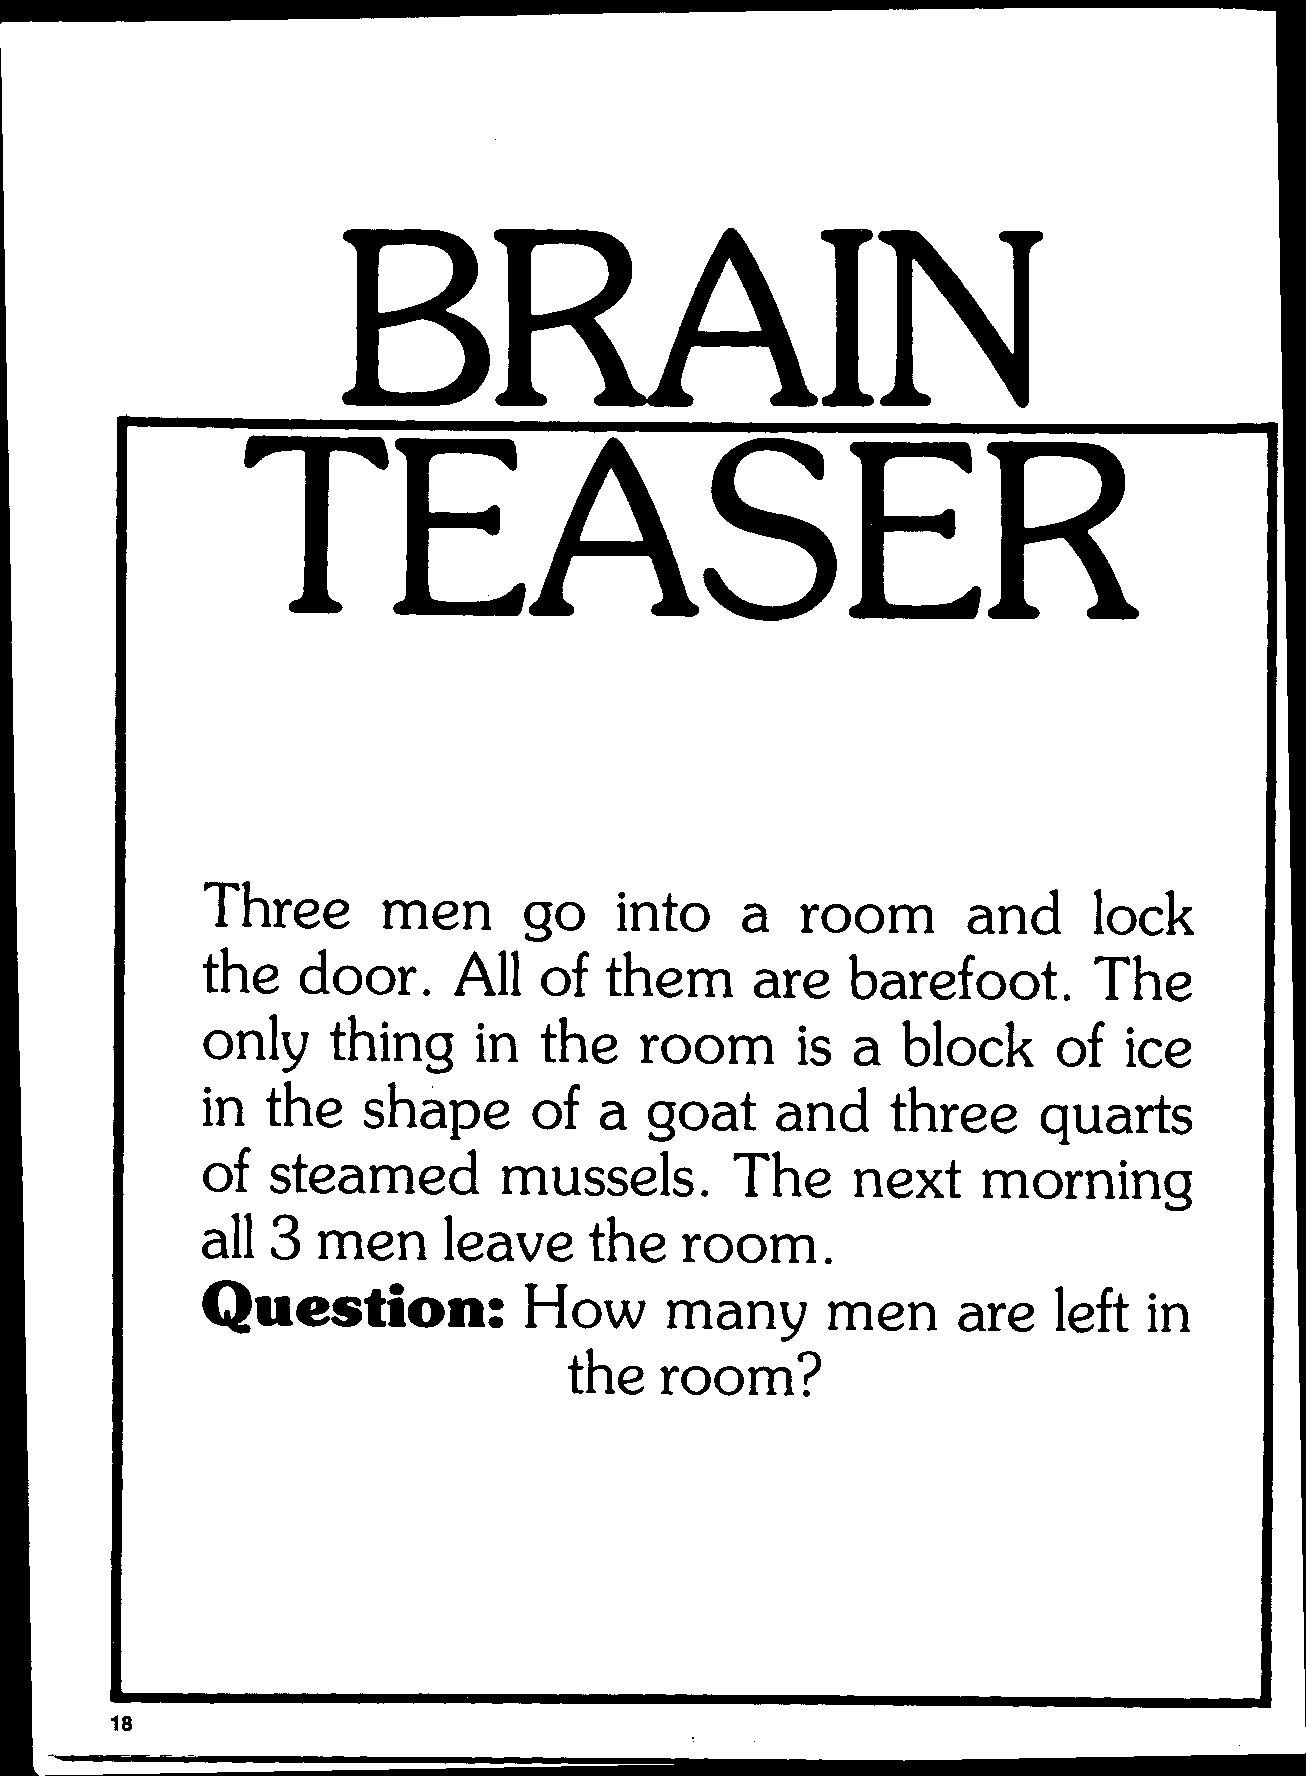 math worksheet : brain teasers  brain teasers  pirates of the caribbean online  : Brain Teasers For Middle Schoolers